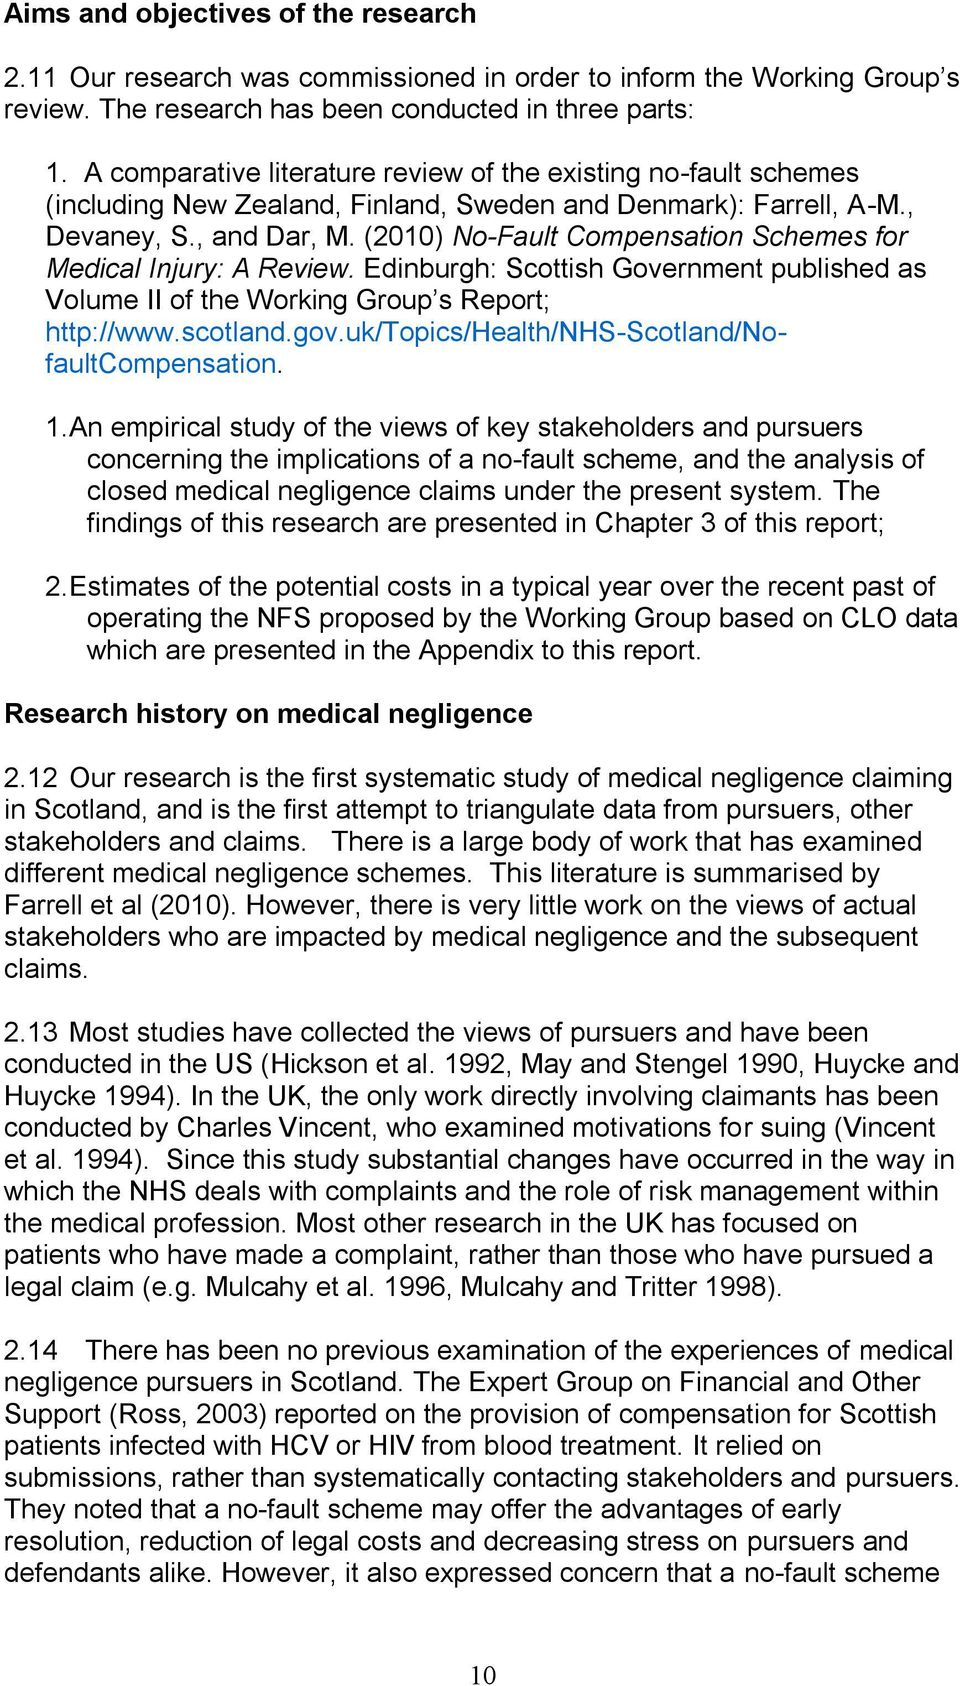 (2010) No-Fault Compensation Schemes for Medical Injury: A Review. Edinburgh: Scottish Government published as Volume II of the Working Group s Report; http://www.scotland.gov.